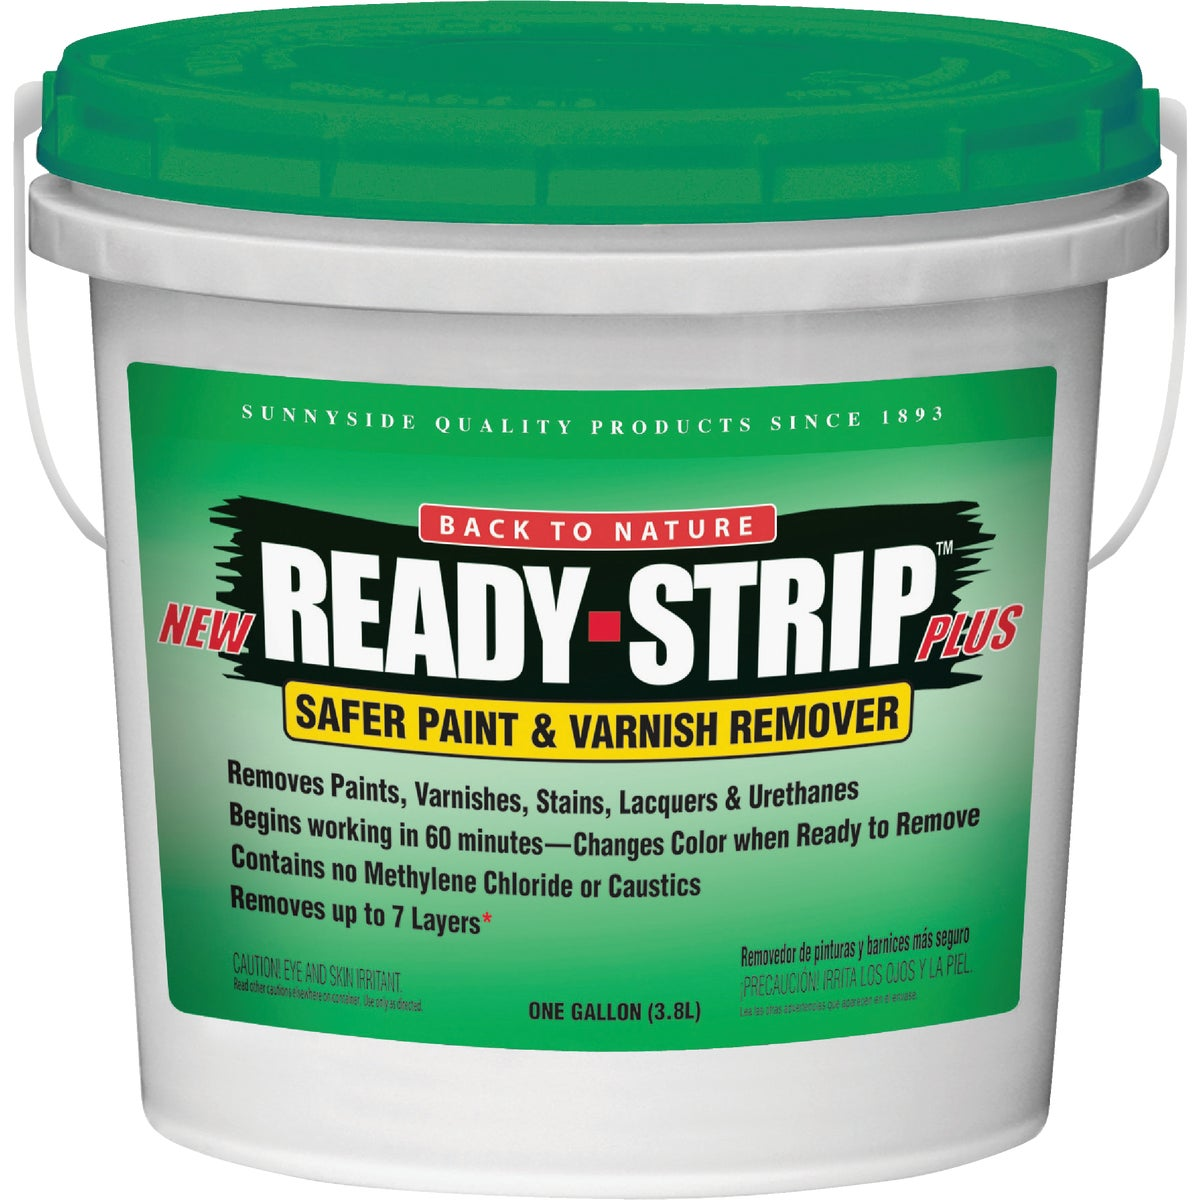 READY STRP PAINT REMOVER - 658G1 by Sunnyside Corp